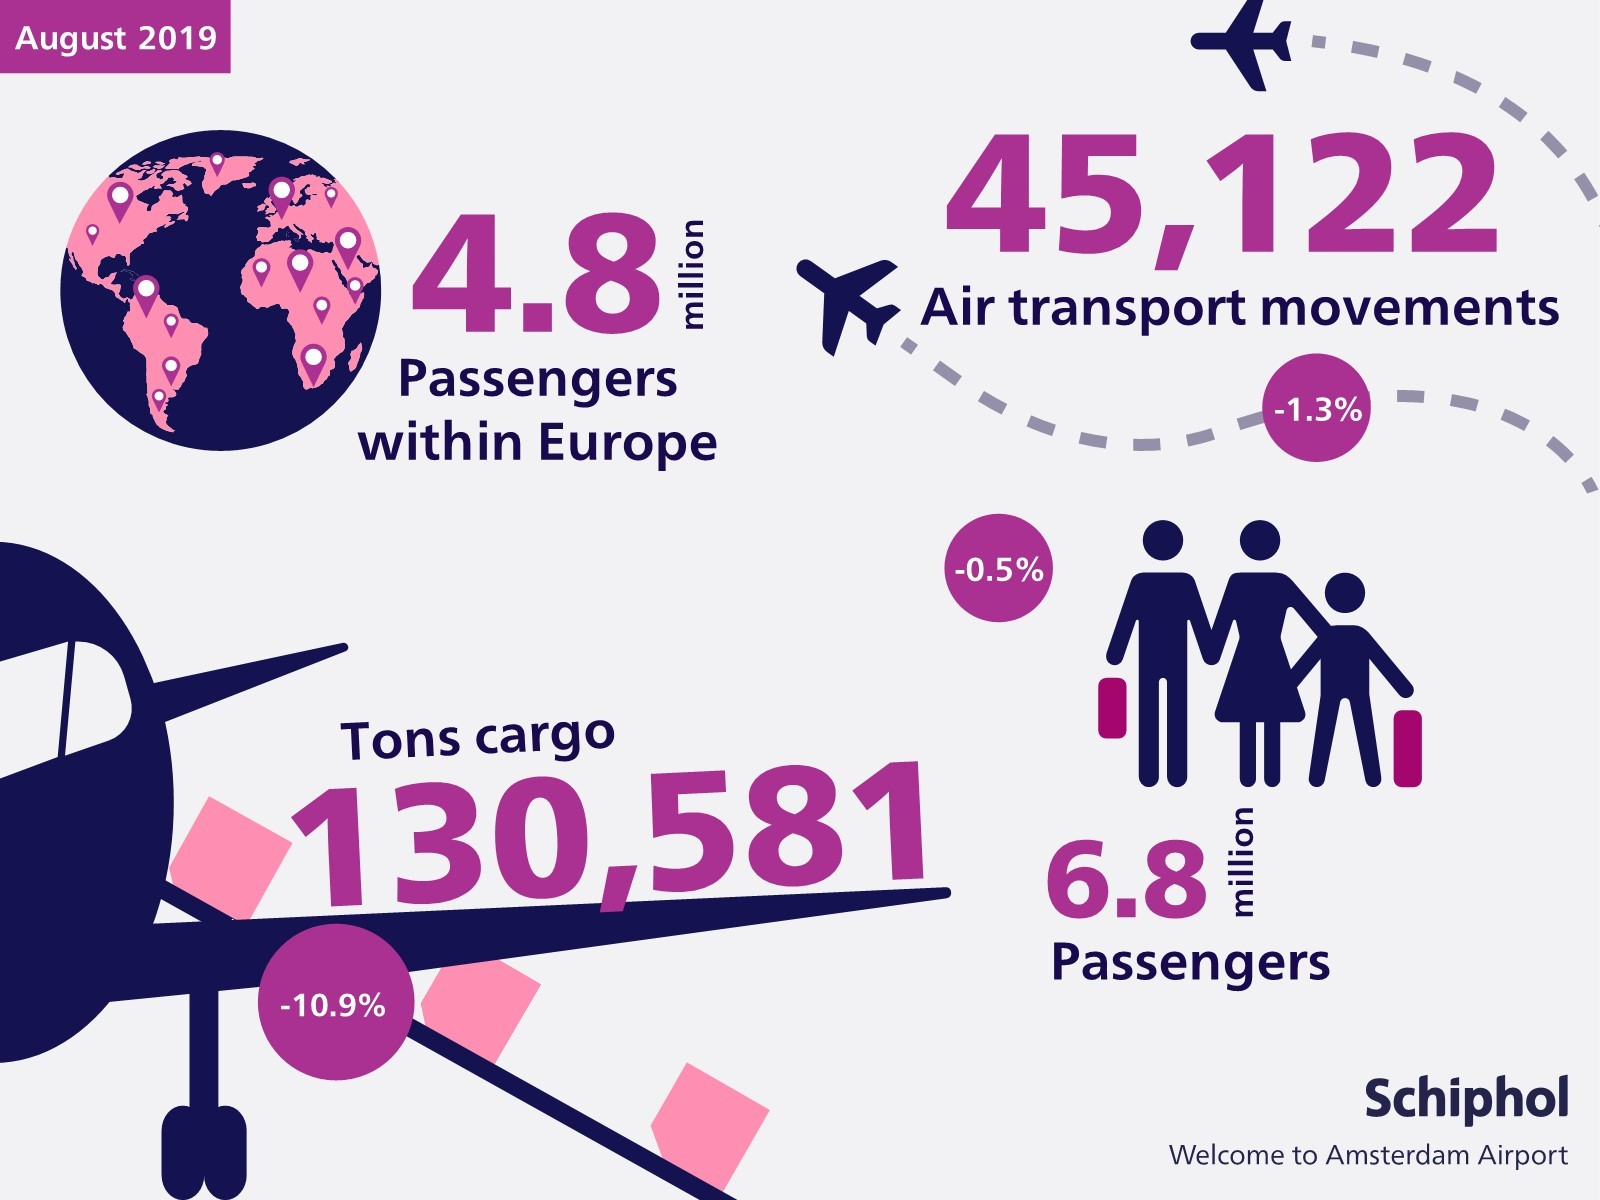 Traffic and transport figures for August 2019